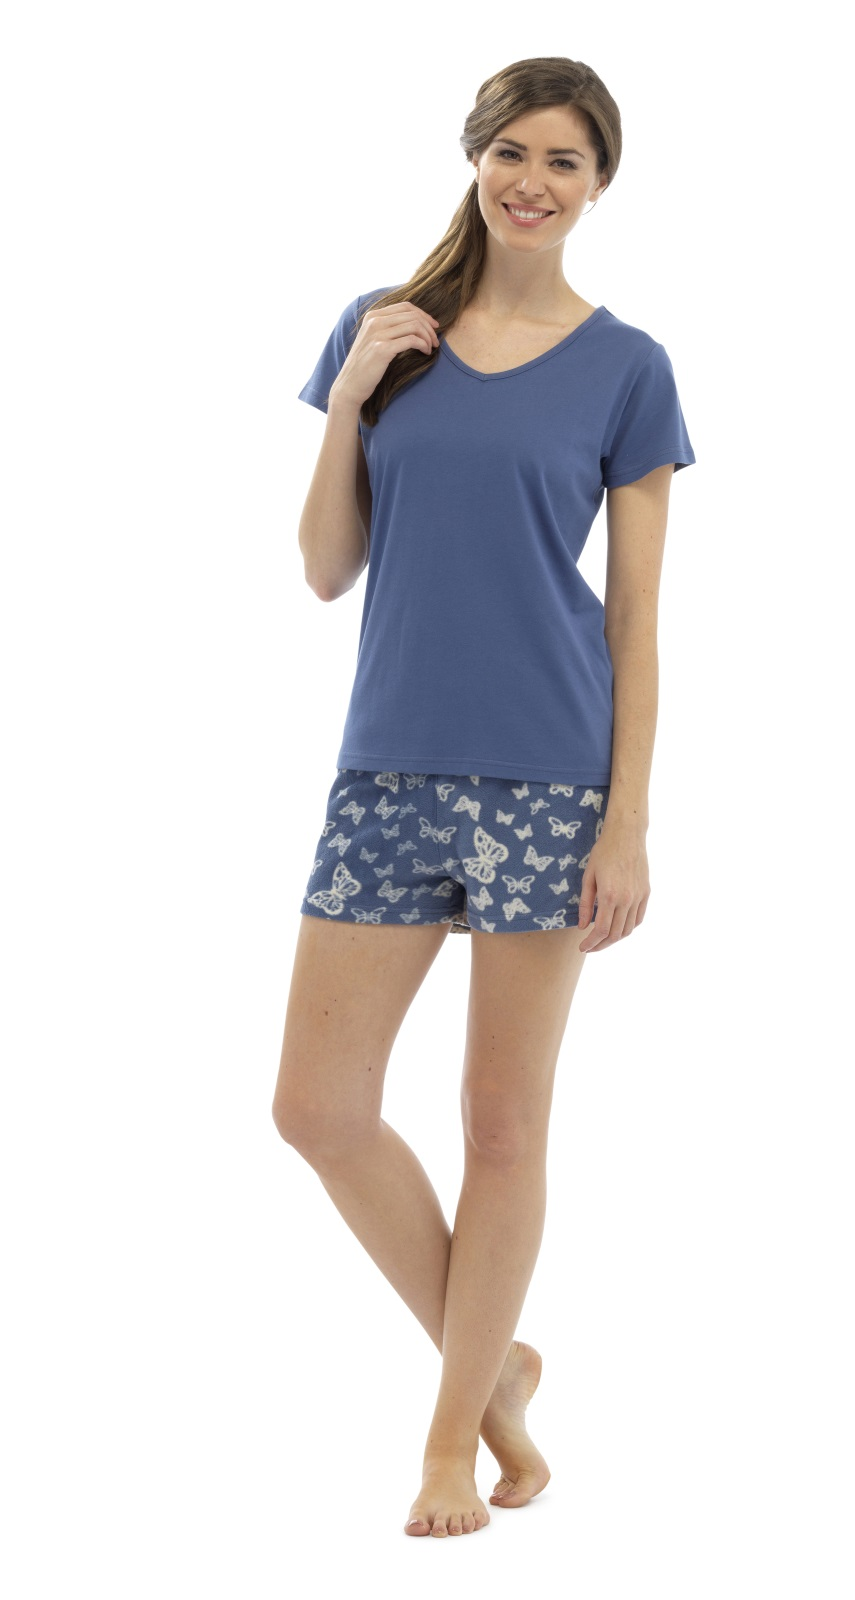 womens short pyjamas 2 piece set nightwear t shirt